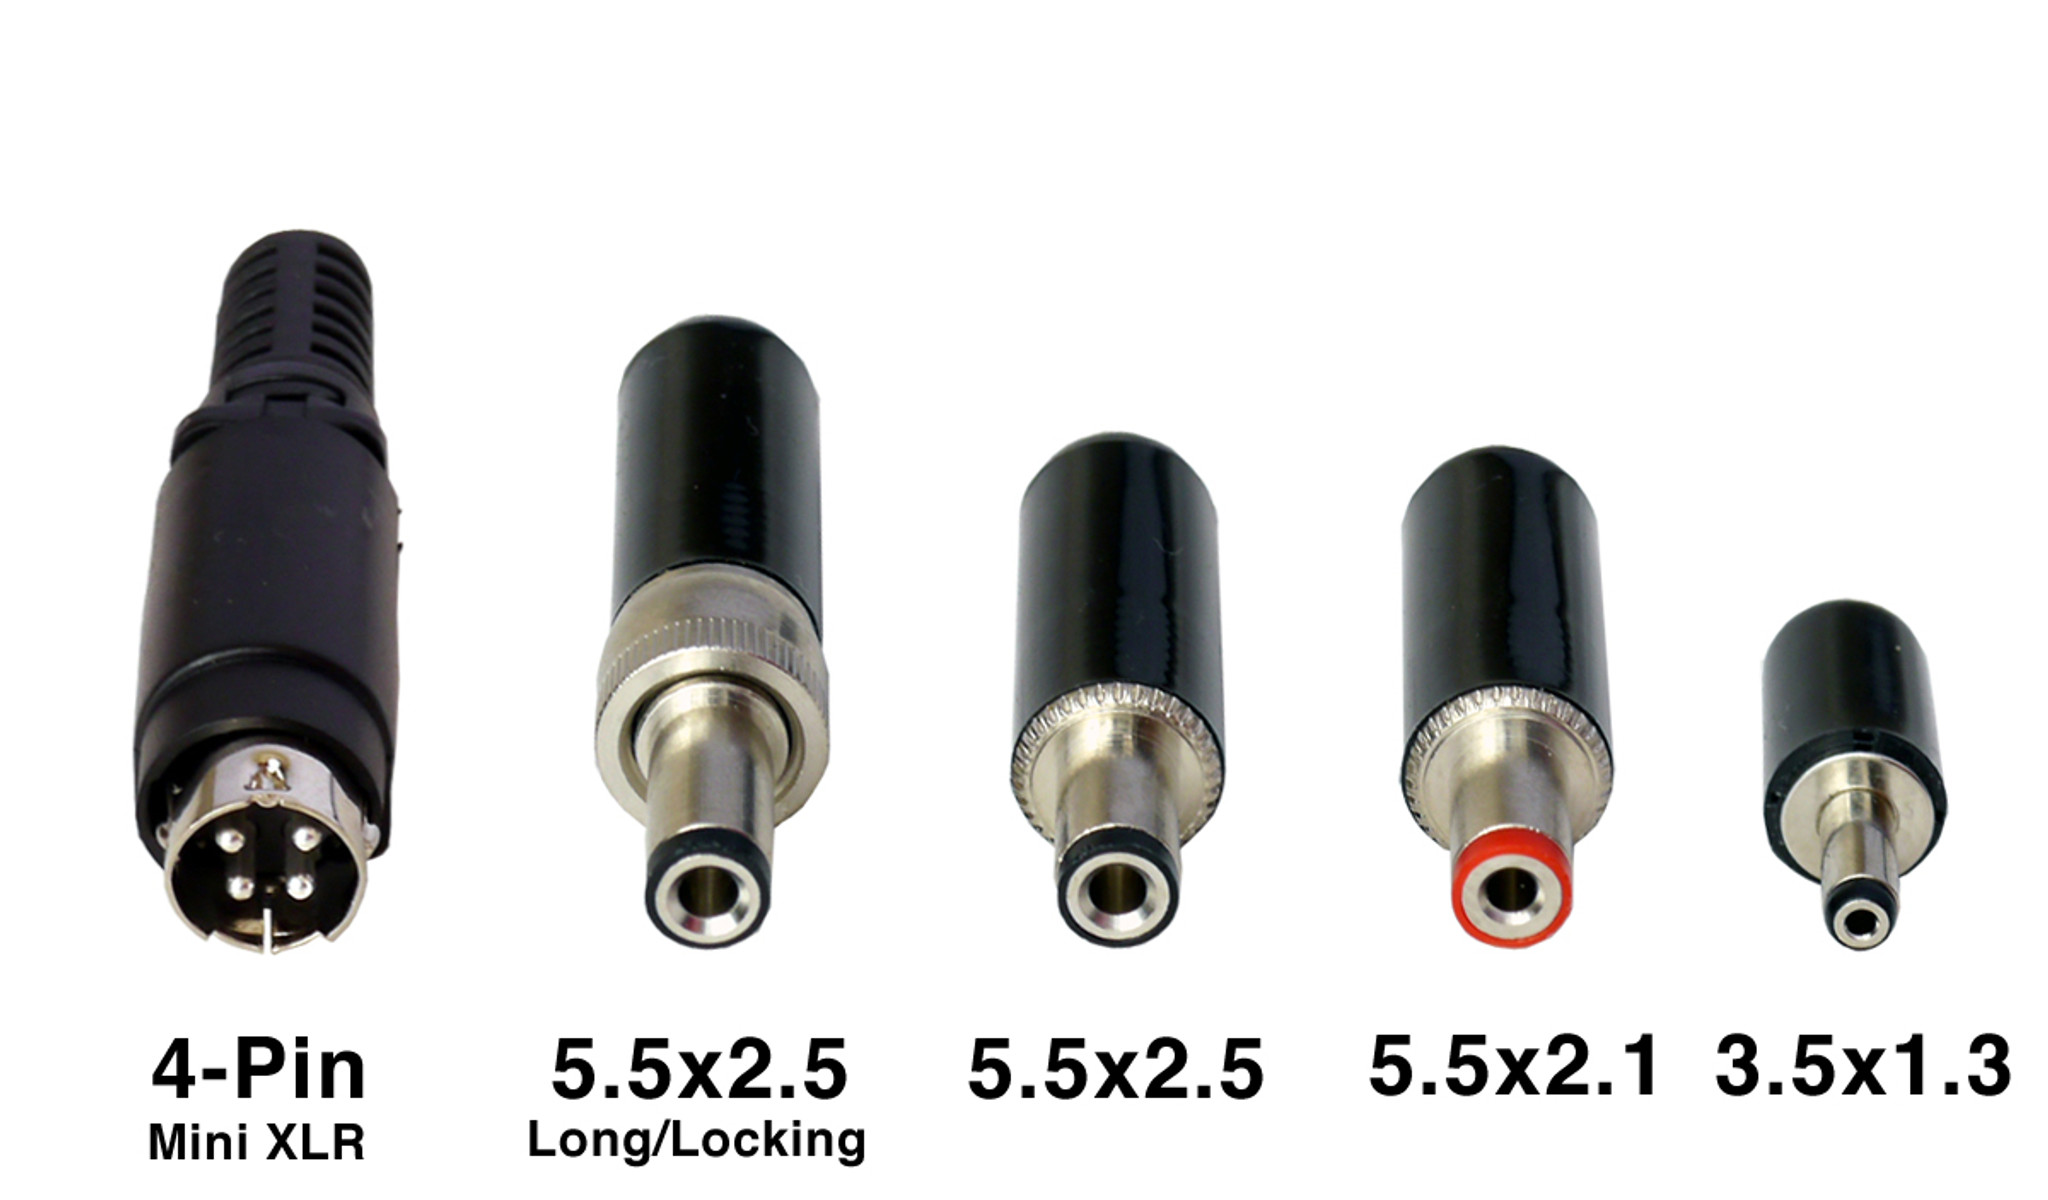 hight resolution of dc plug options and sizes